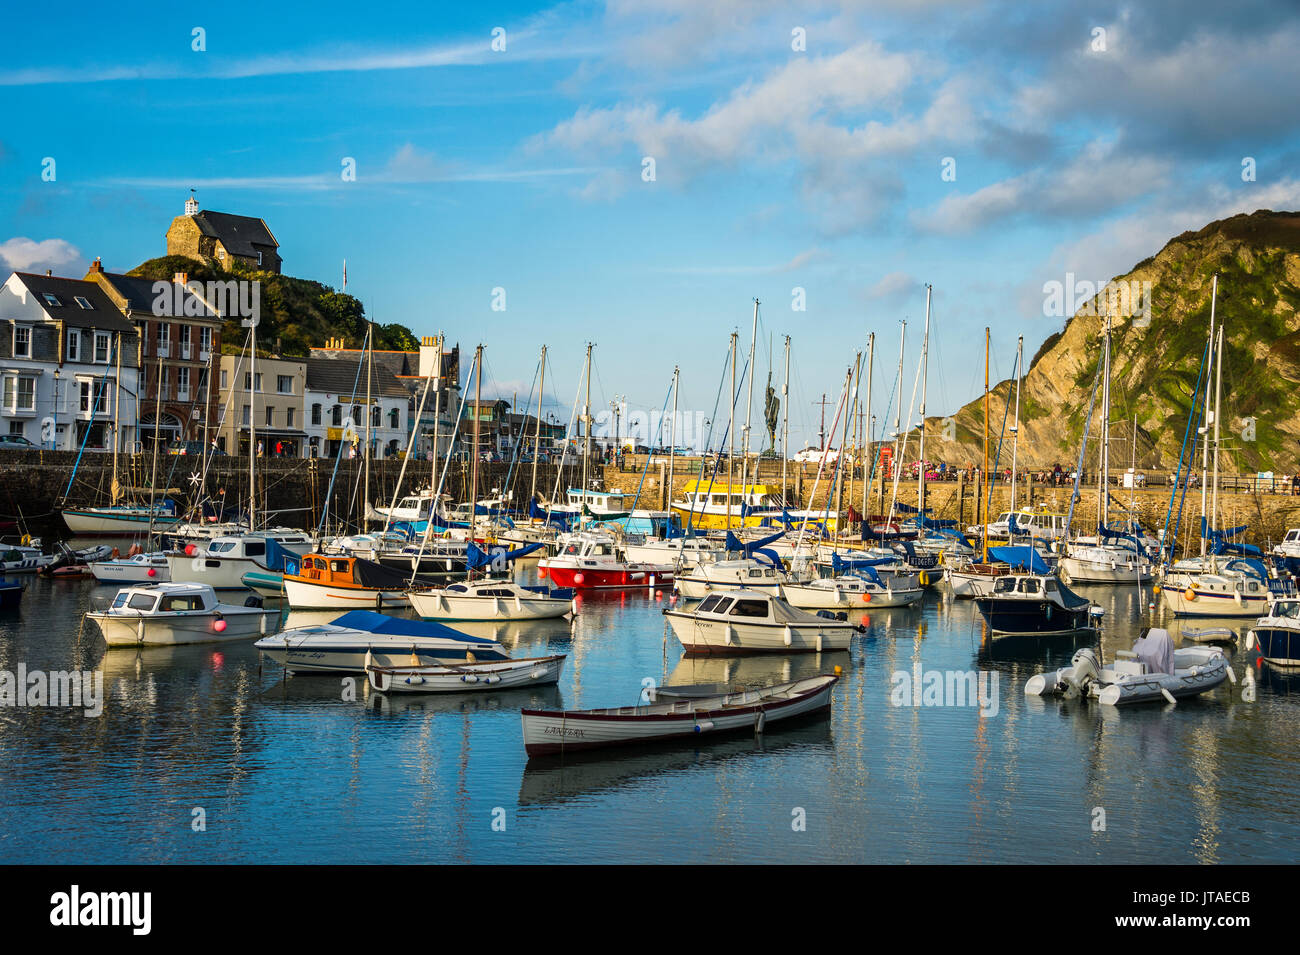 Boat harbour of Ifracombe, North Devon, England, United Kingdom, Europe - Stock Image